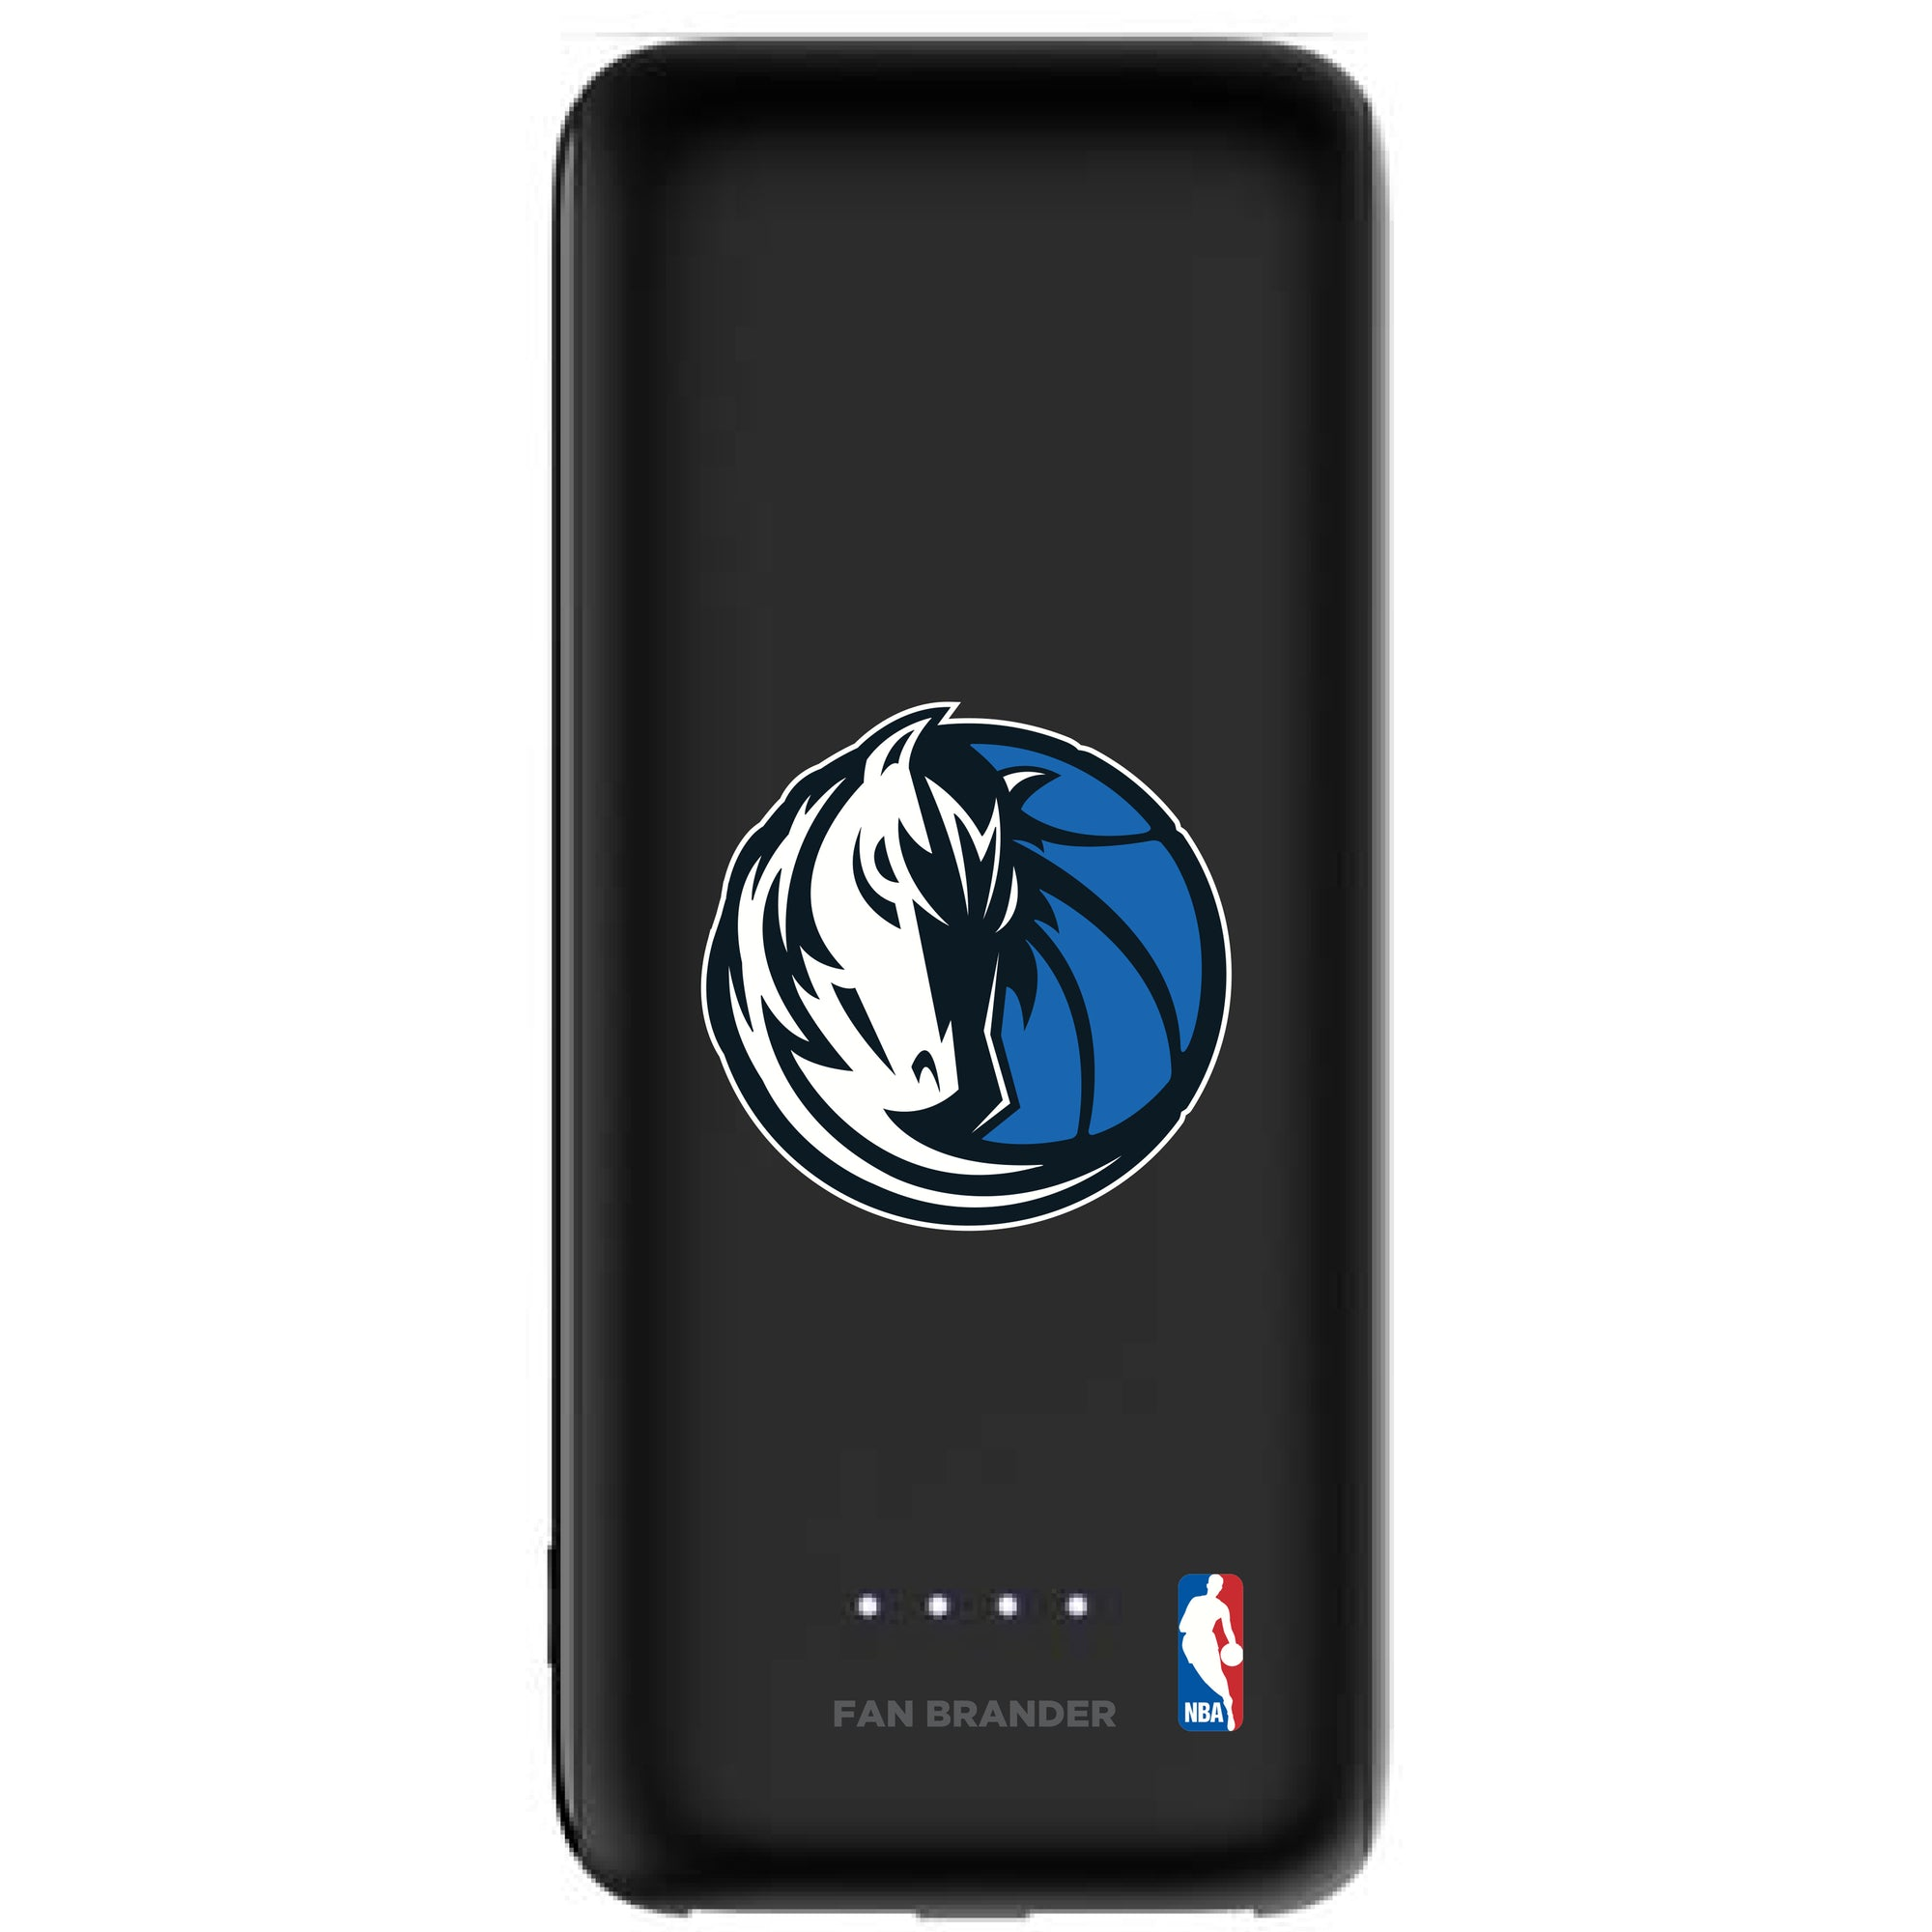 Dallas Mavericks Power Boost Mini 5,200 mAH